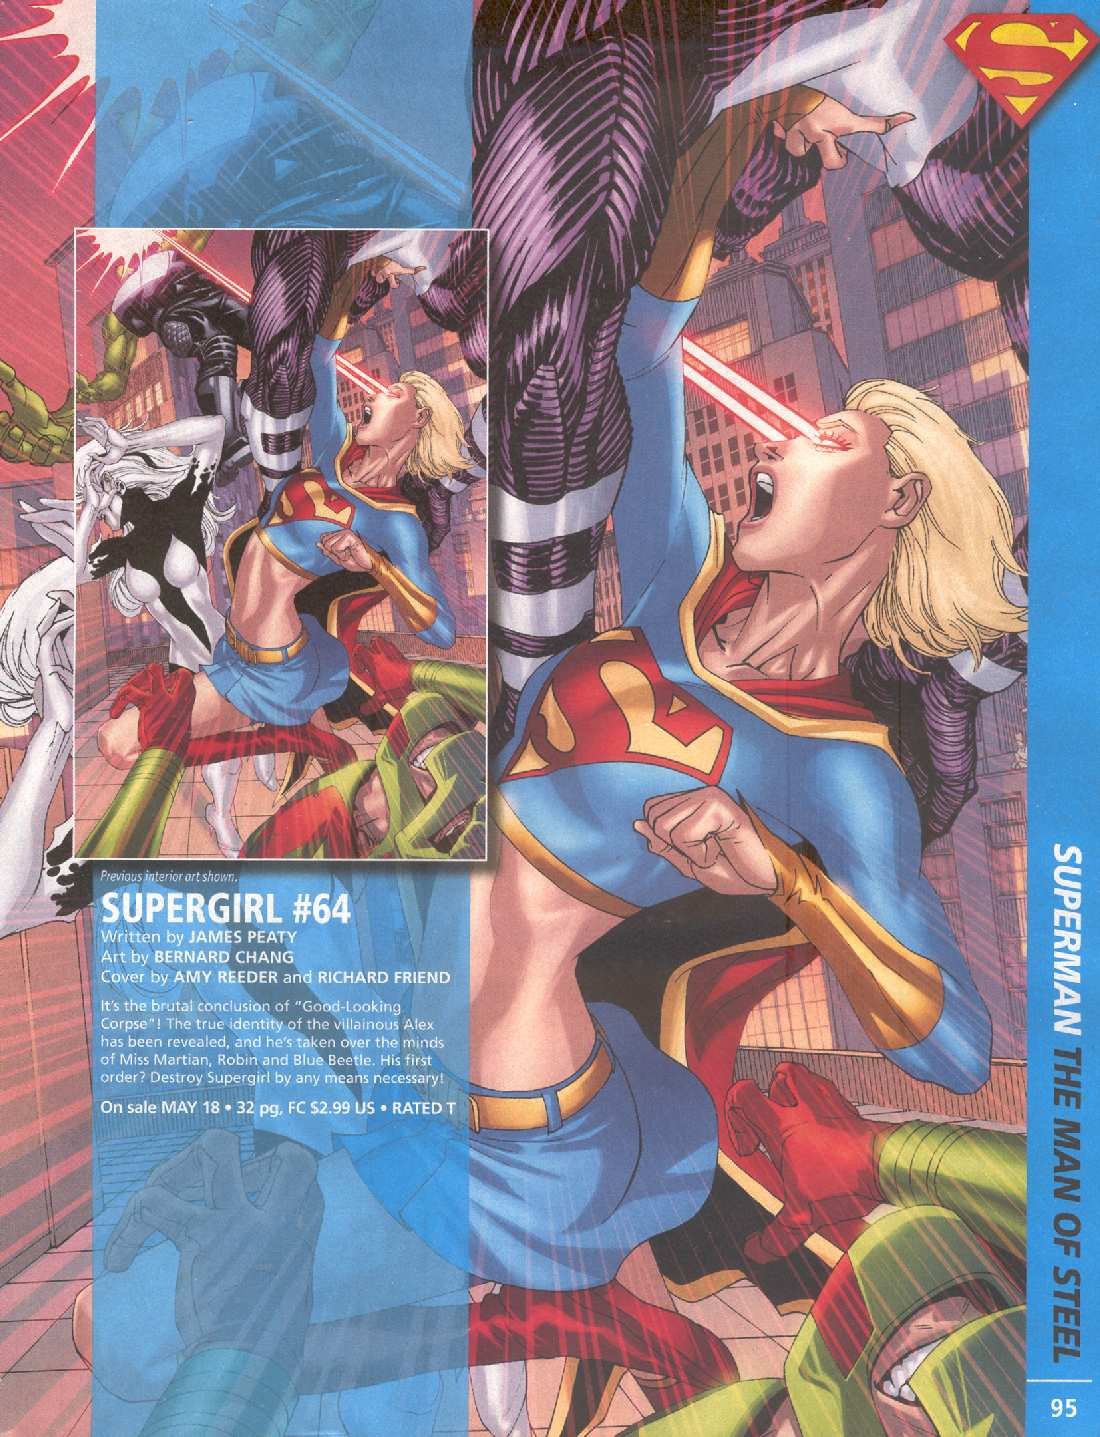 SUPERGIRL #64 PREVIEW